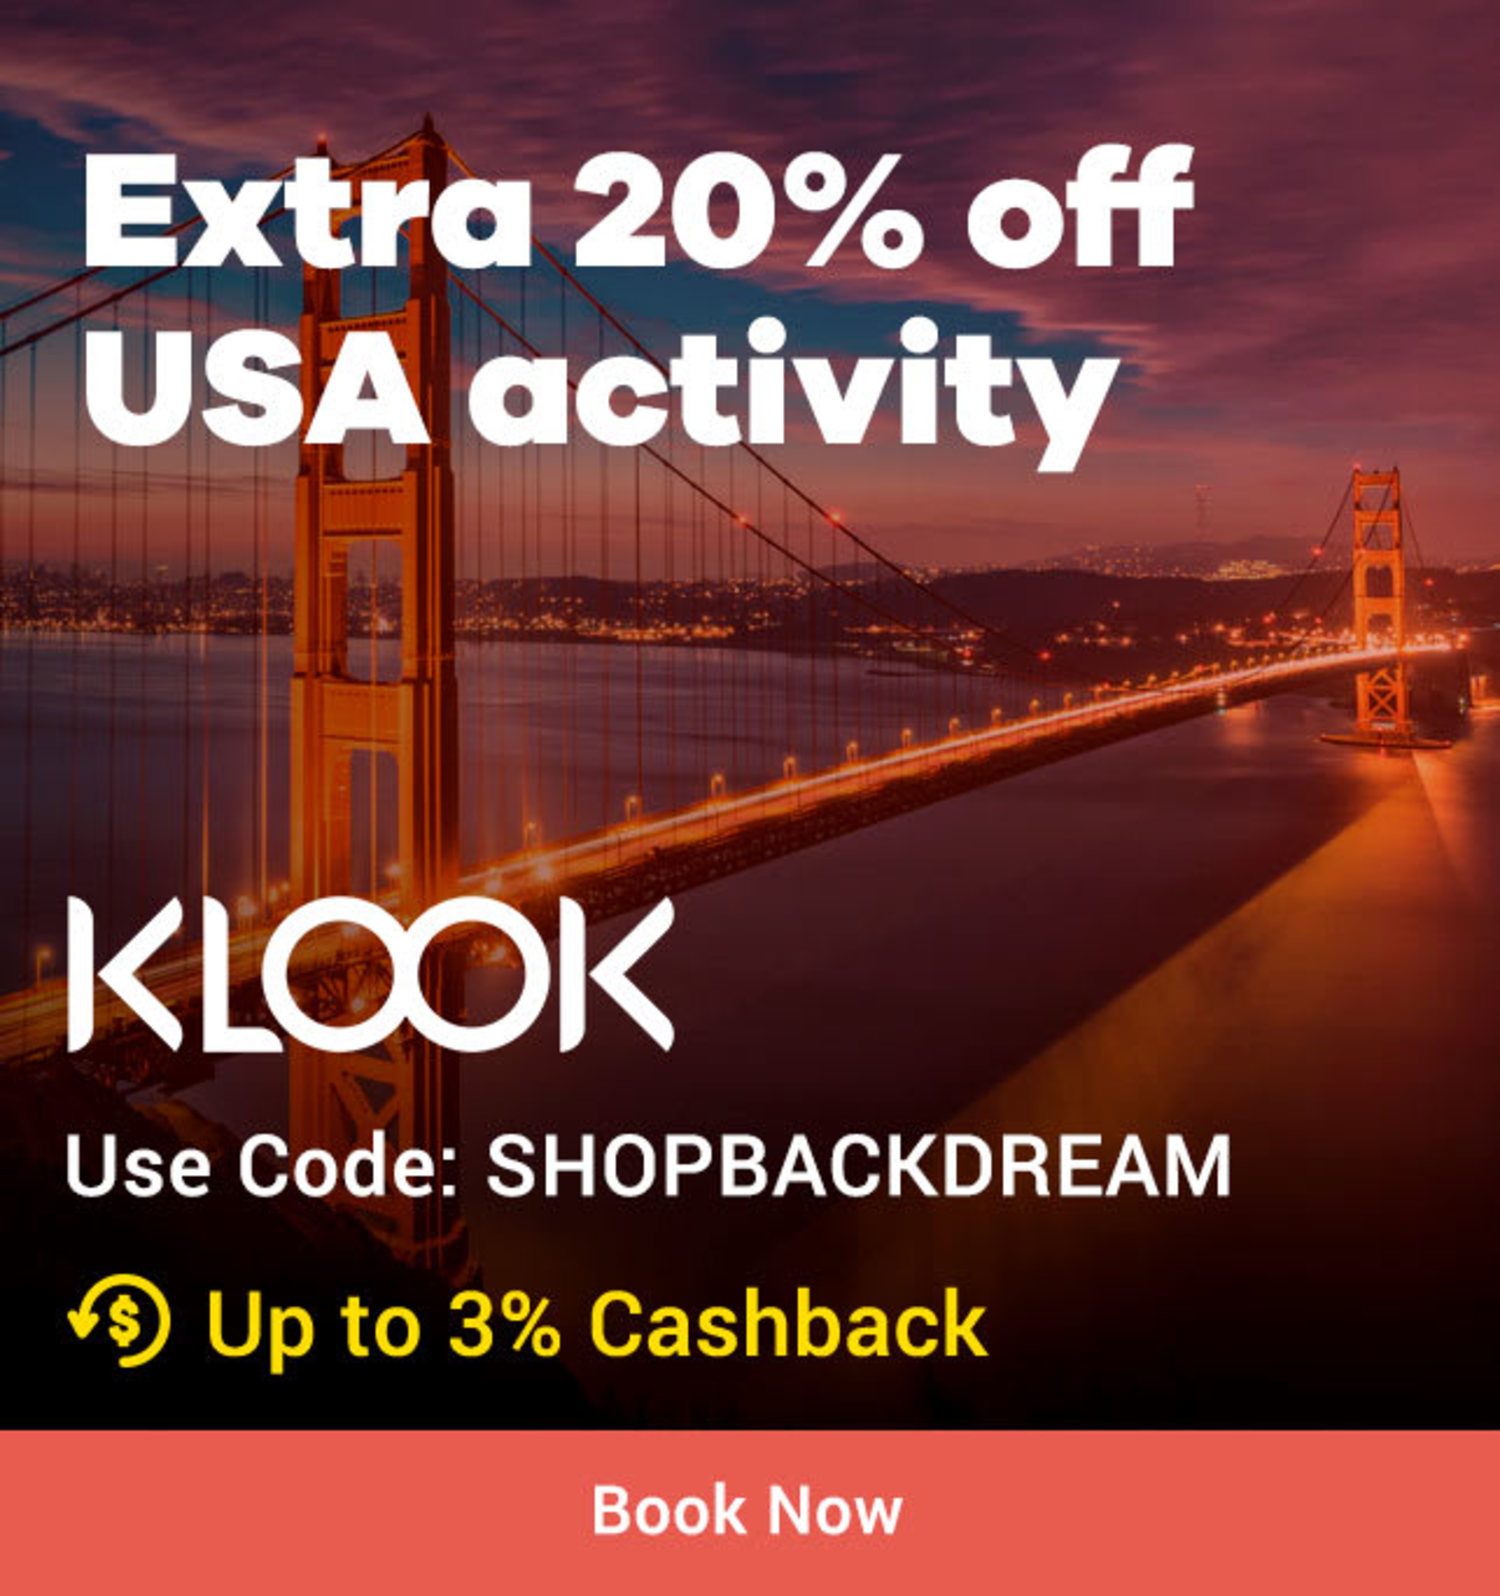 Limited time only KLOOK Extra 20% off USA activity | Use code SHOPBACKDREAM + Up to 3% Cashback